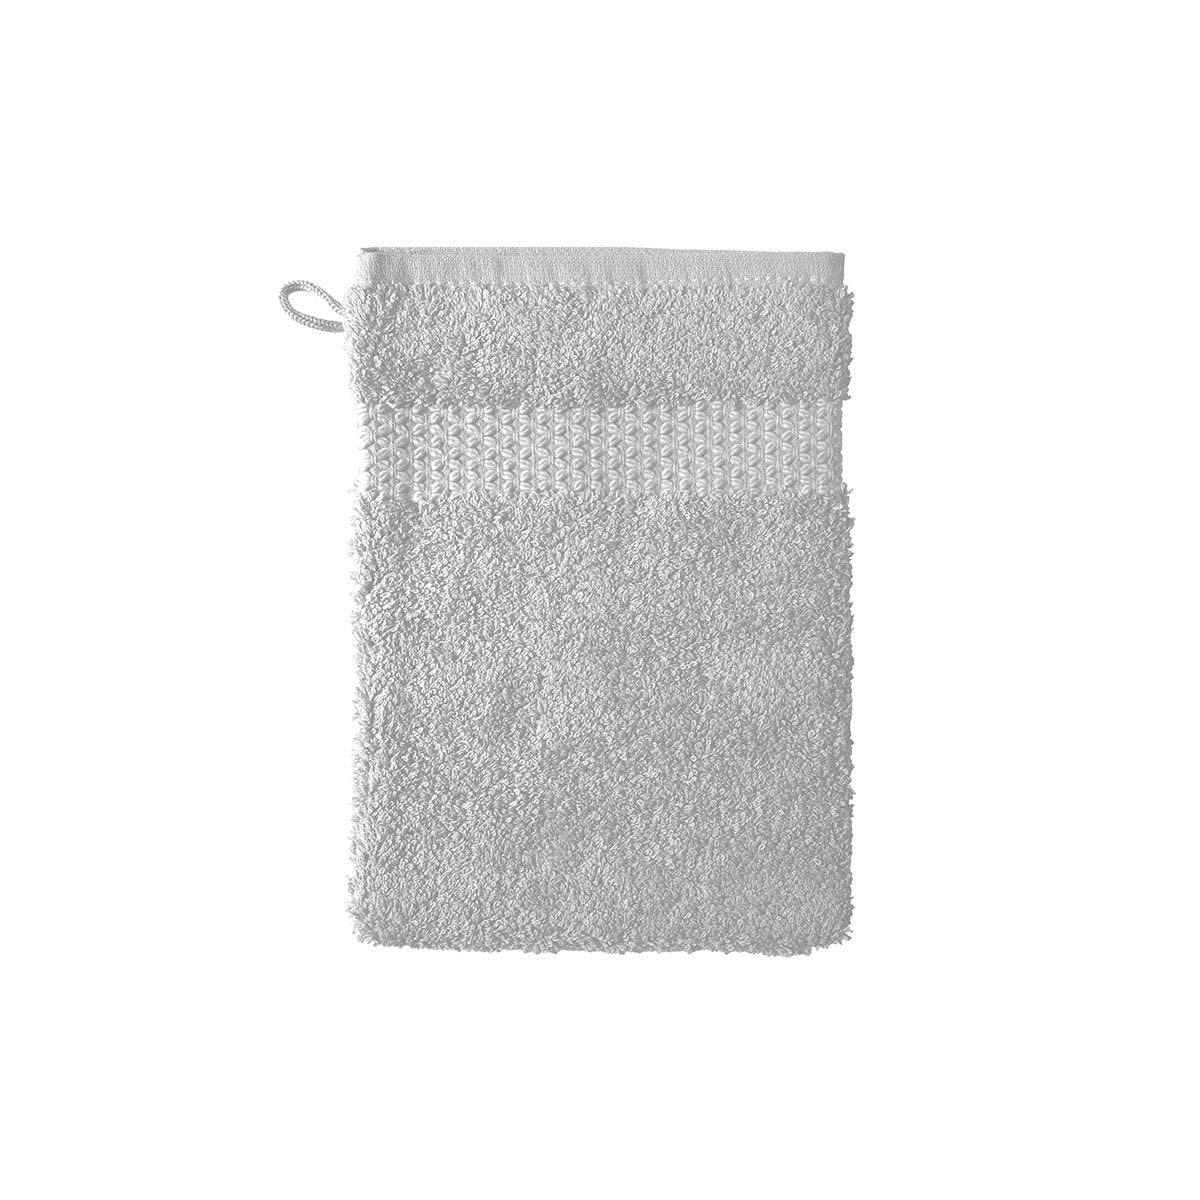 Etoile Silver Bath Collection by Yves Delorme | Fig Linens, Light gray bath linen, wash mitt